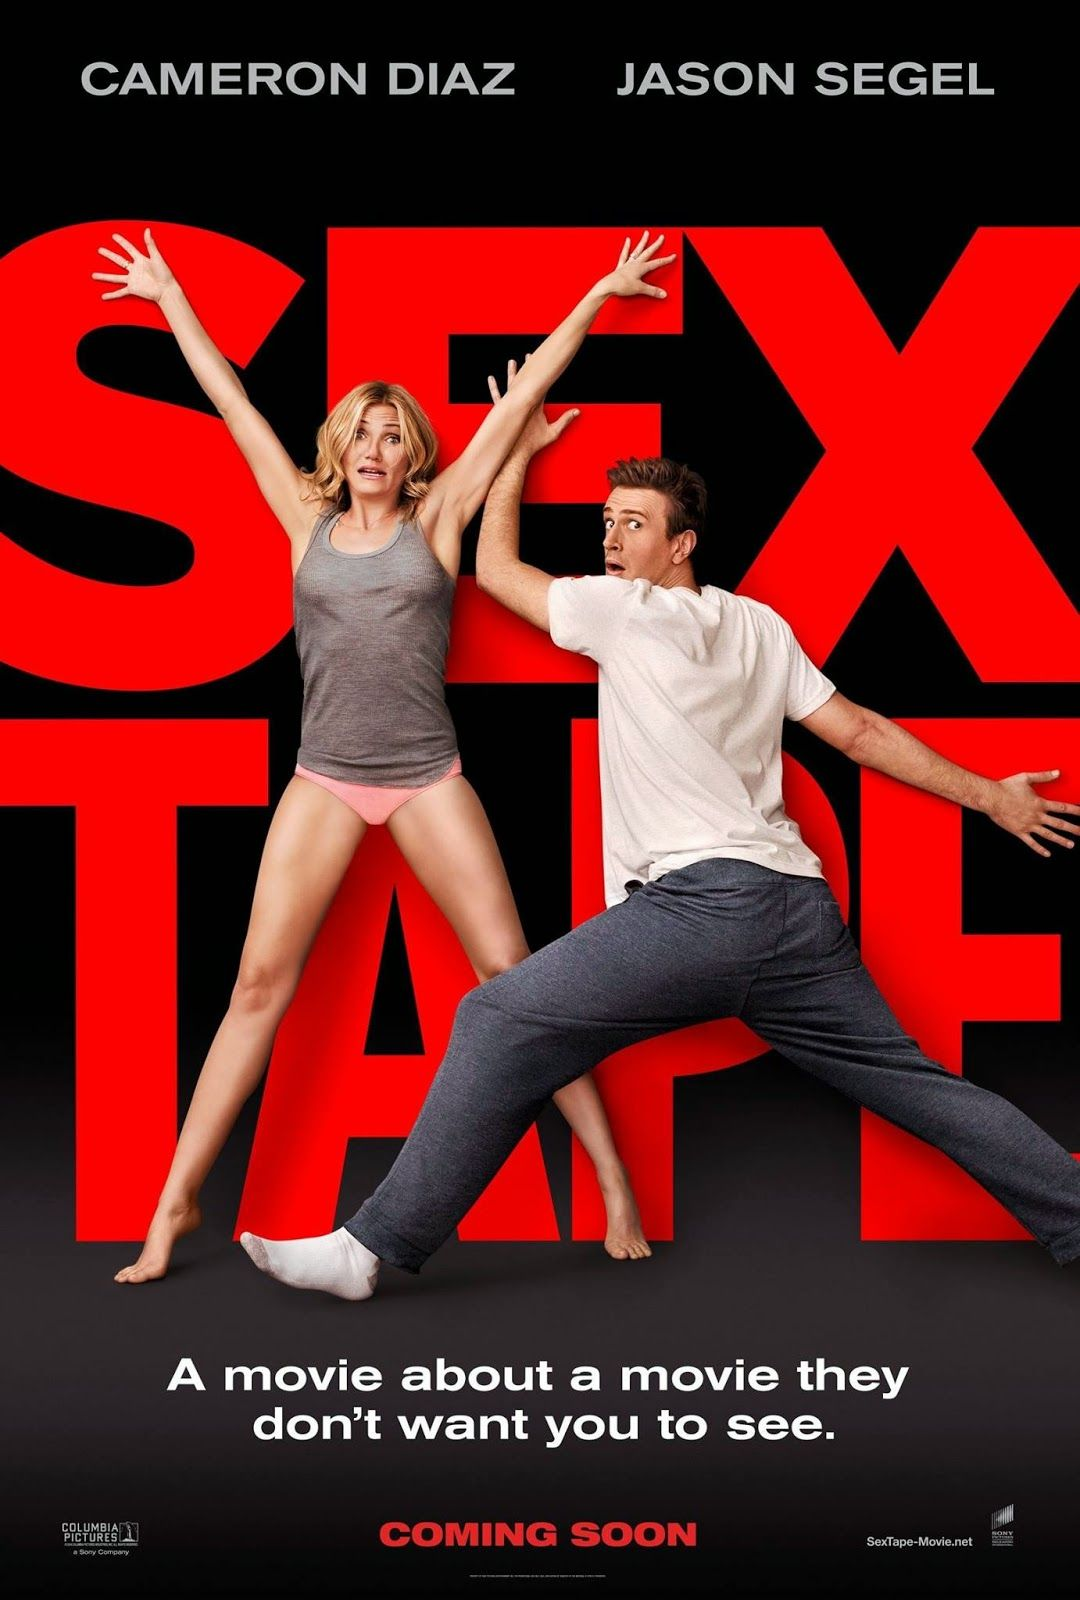 Movies with sex in the title